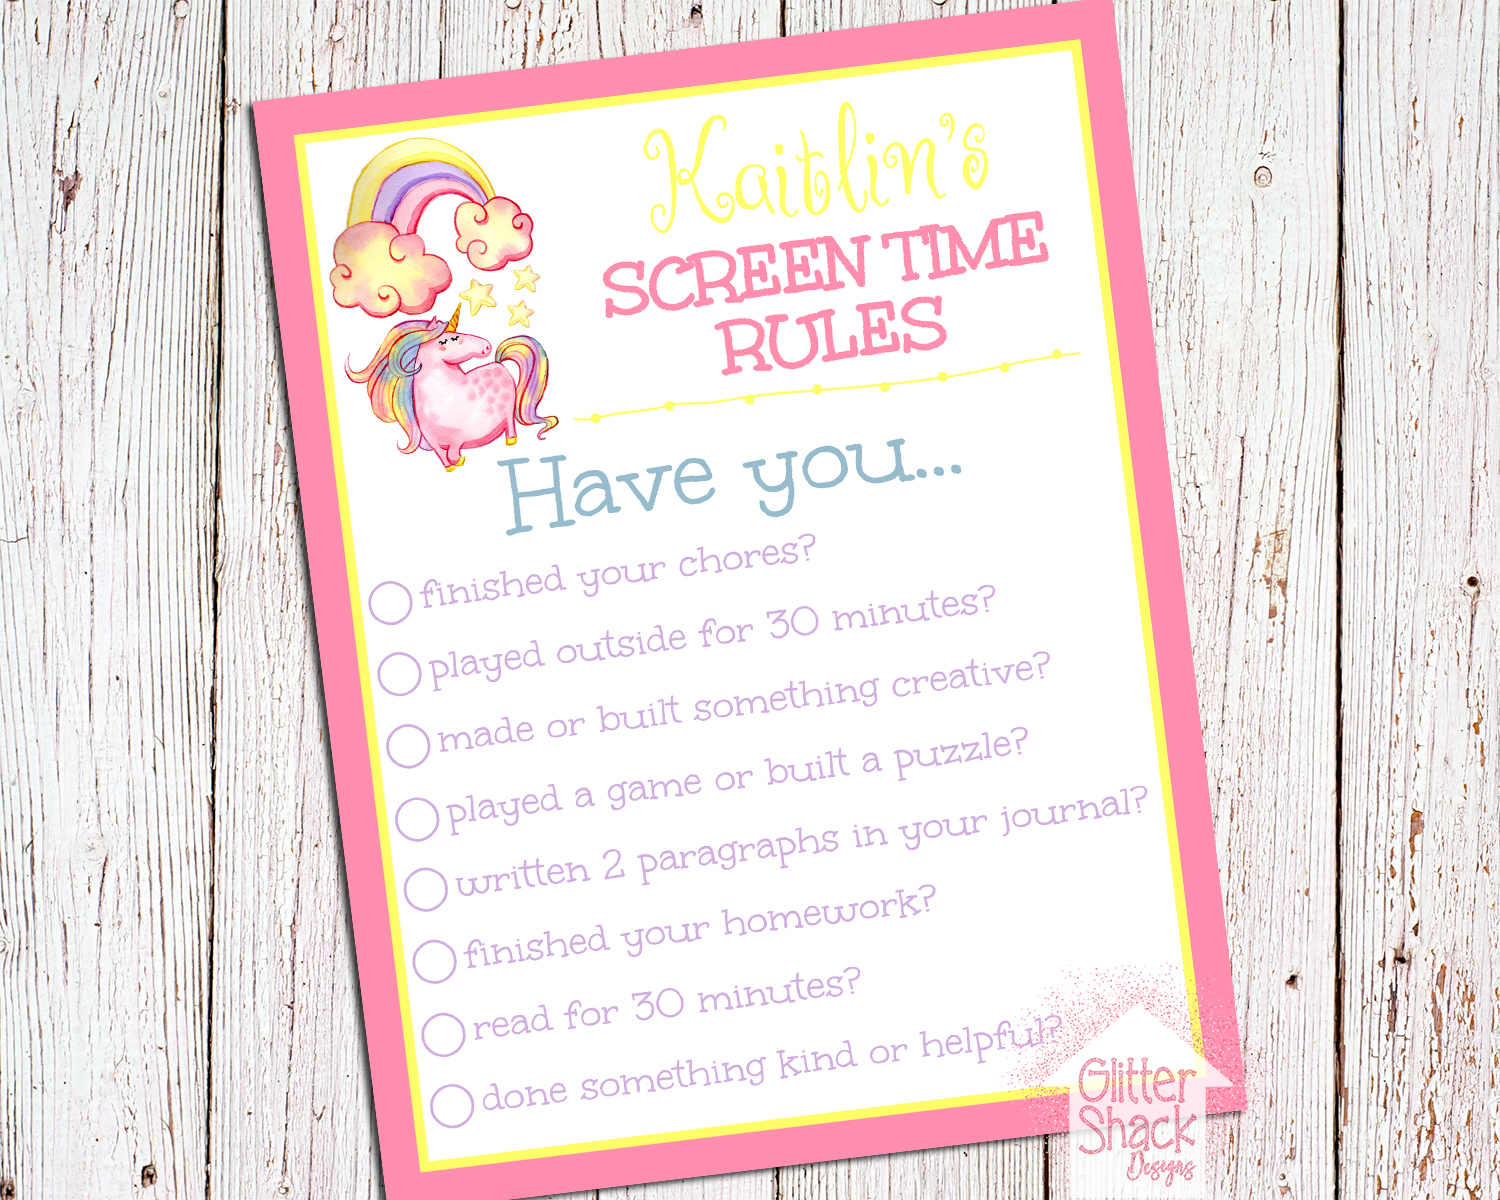 image regarding Screen Time Rules Printable identify Deal with Little ones Display screen Season Getting All those Basic Applications And Rules